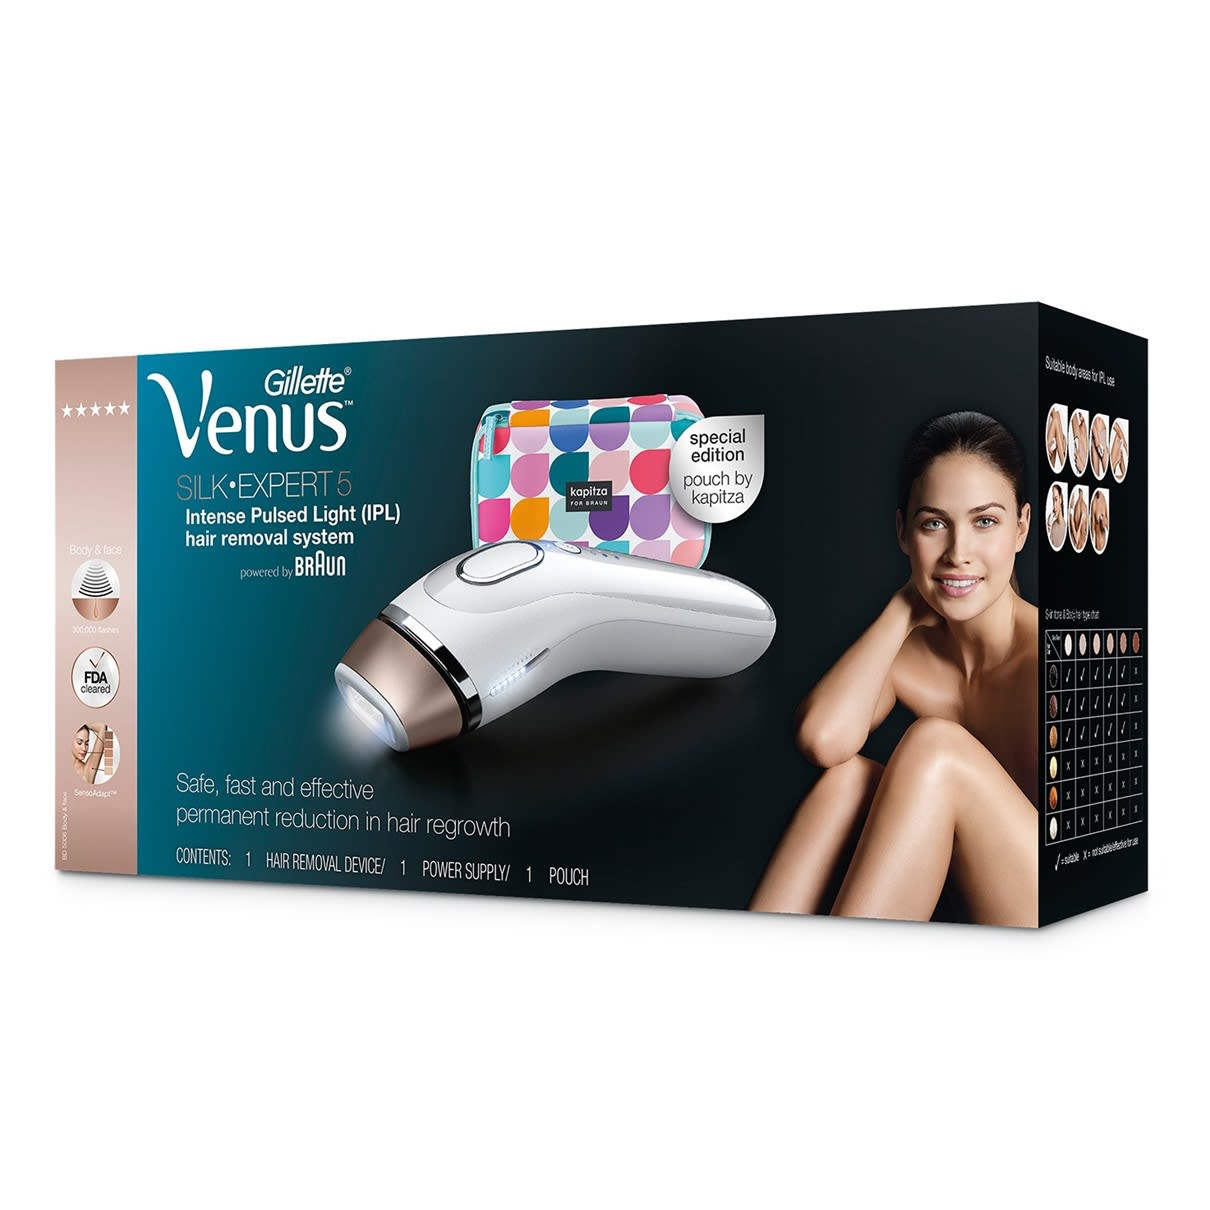 Venus Silk-expert 5 BD5006 IPL with special edition pouch by Kapitza.